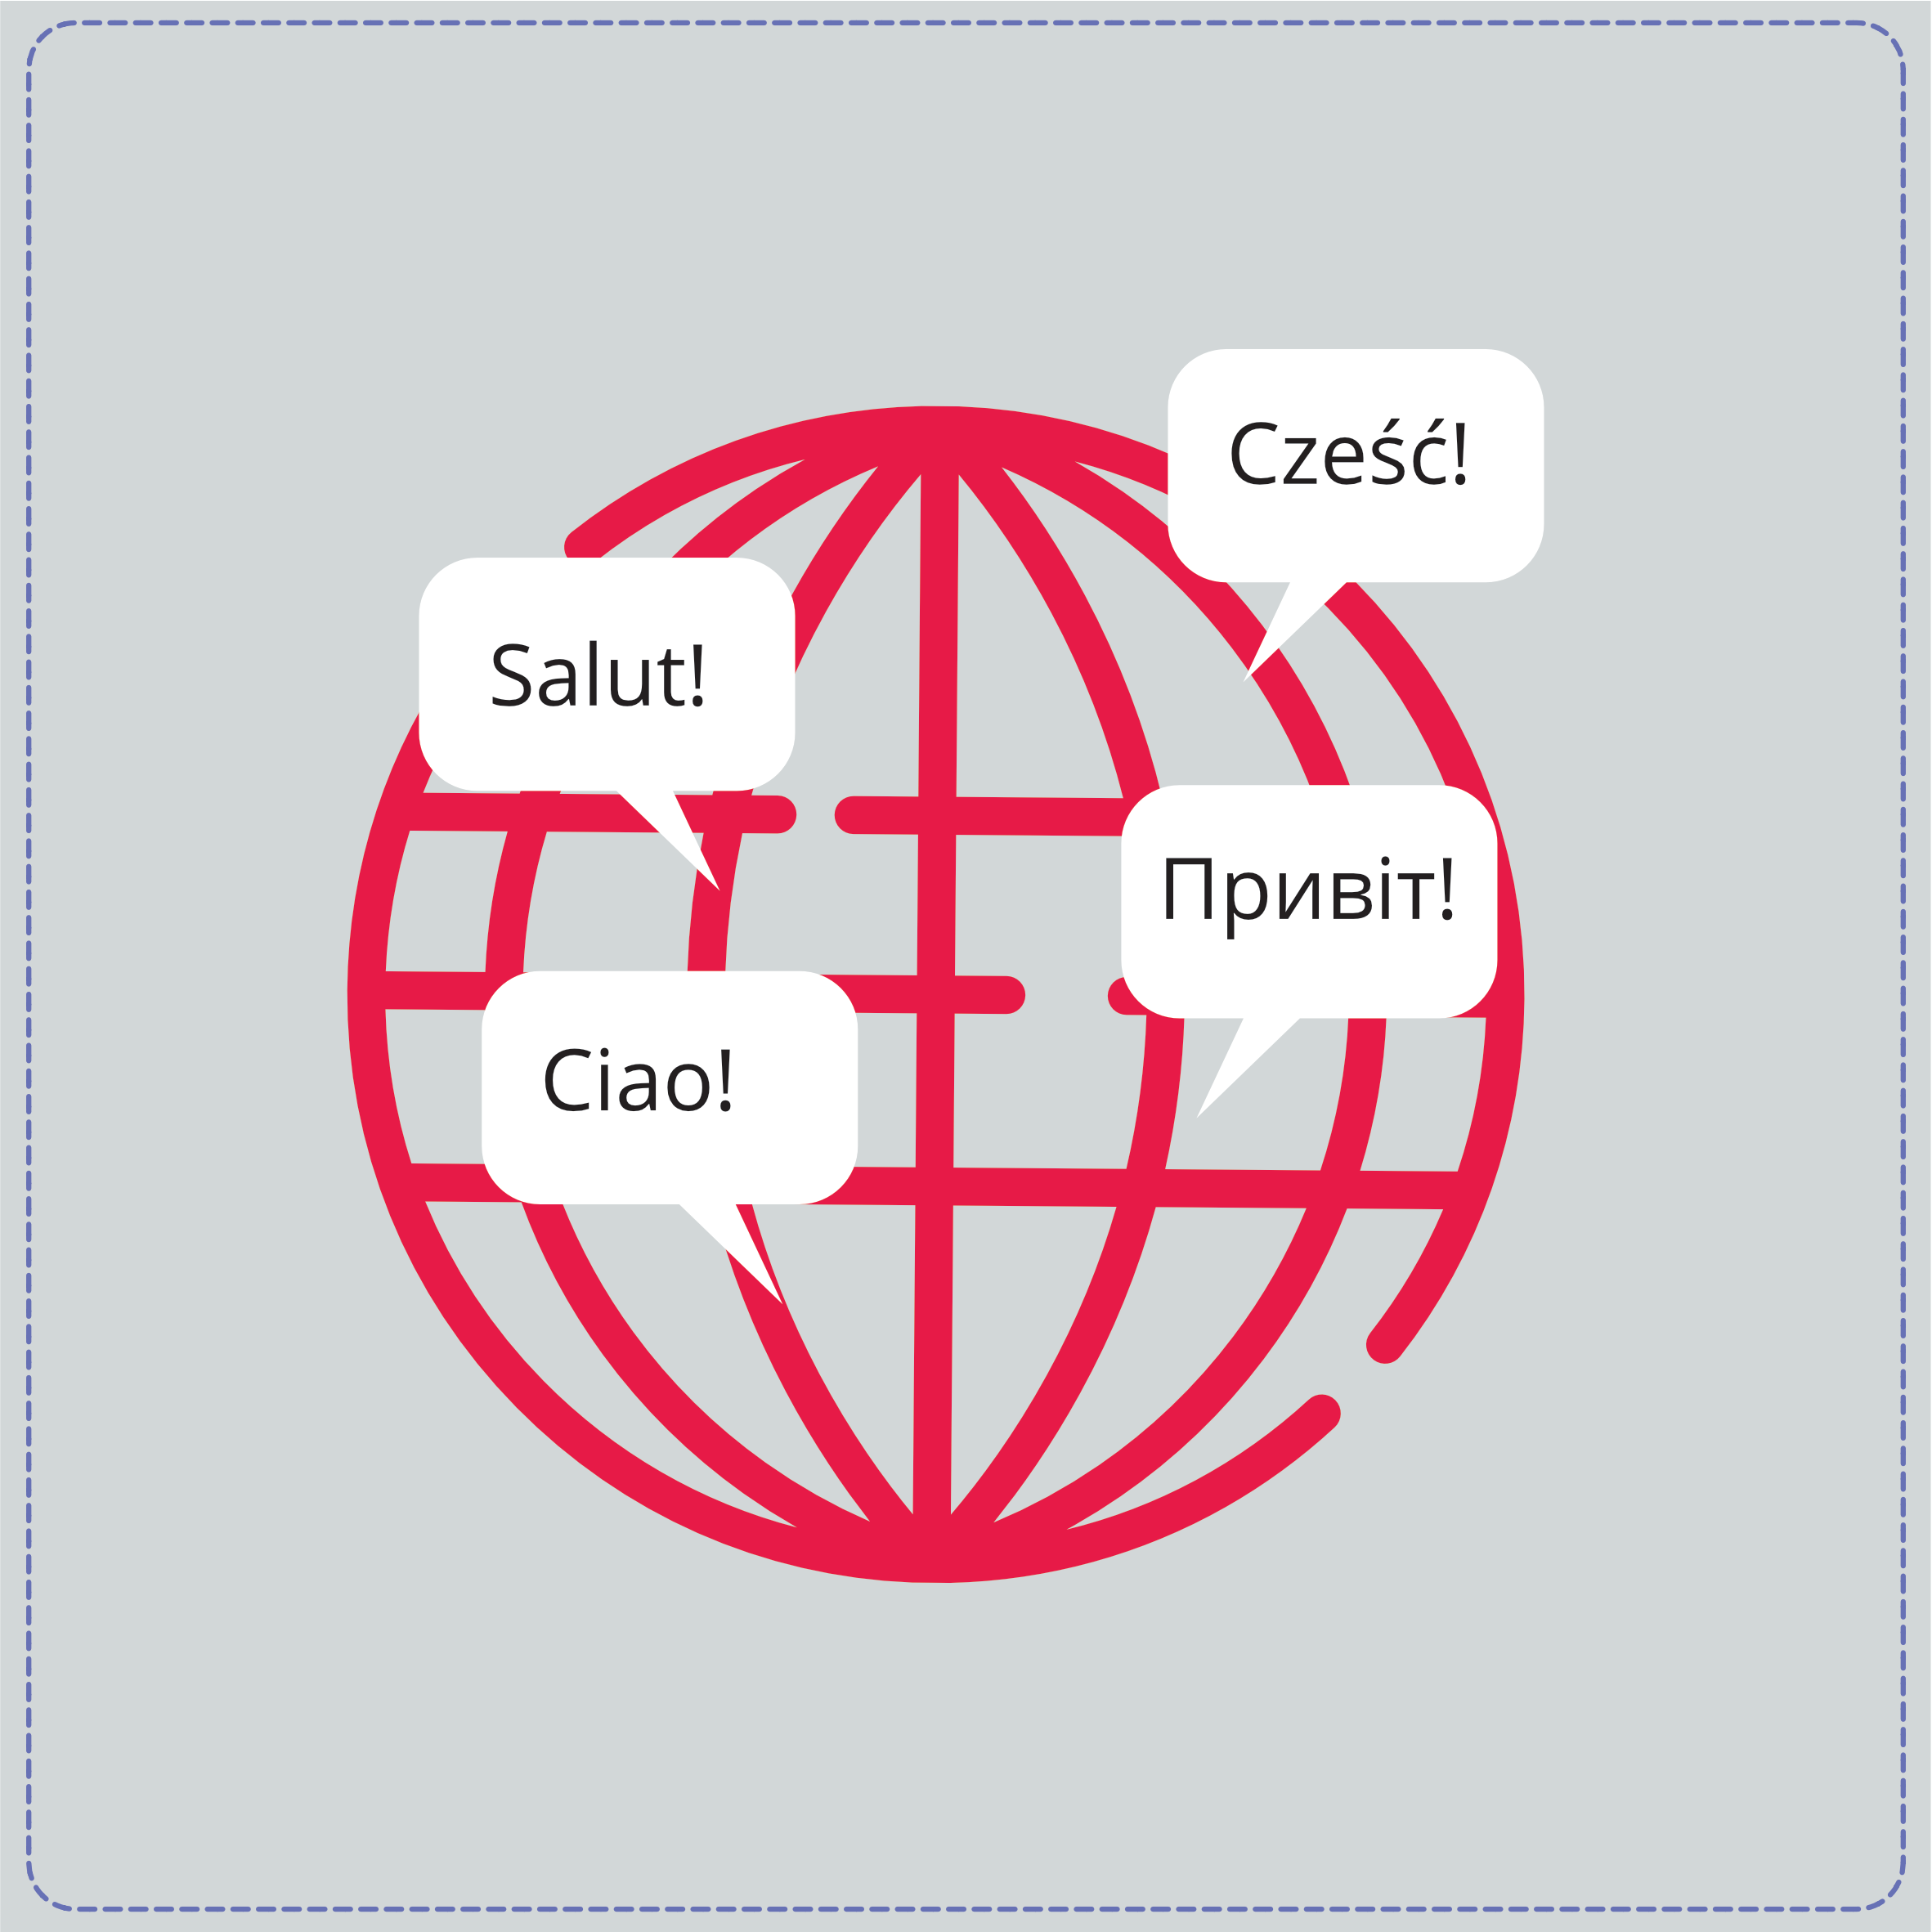 Localized content in different languages